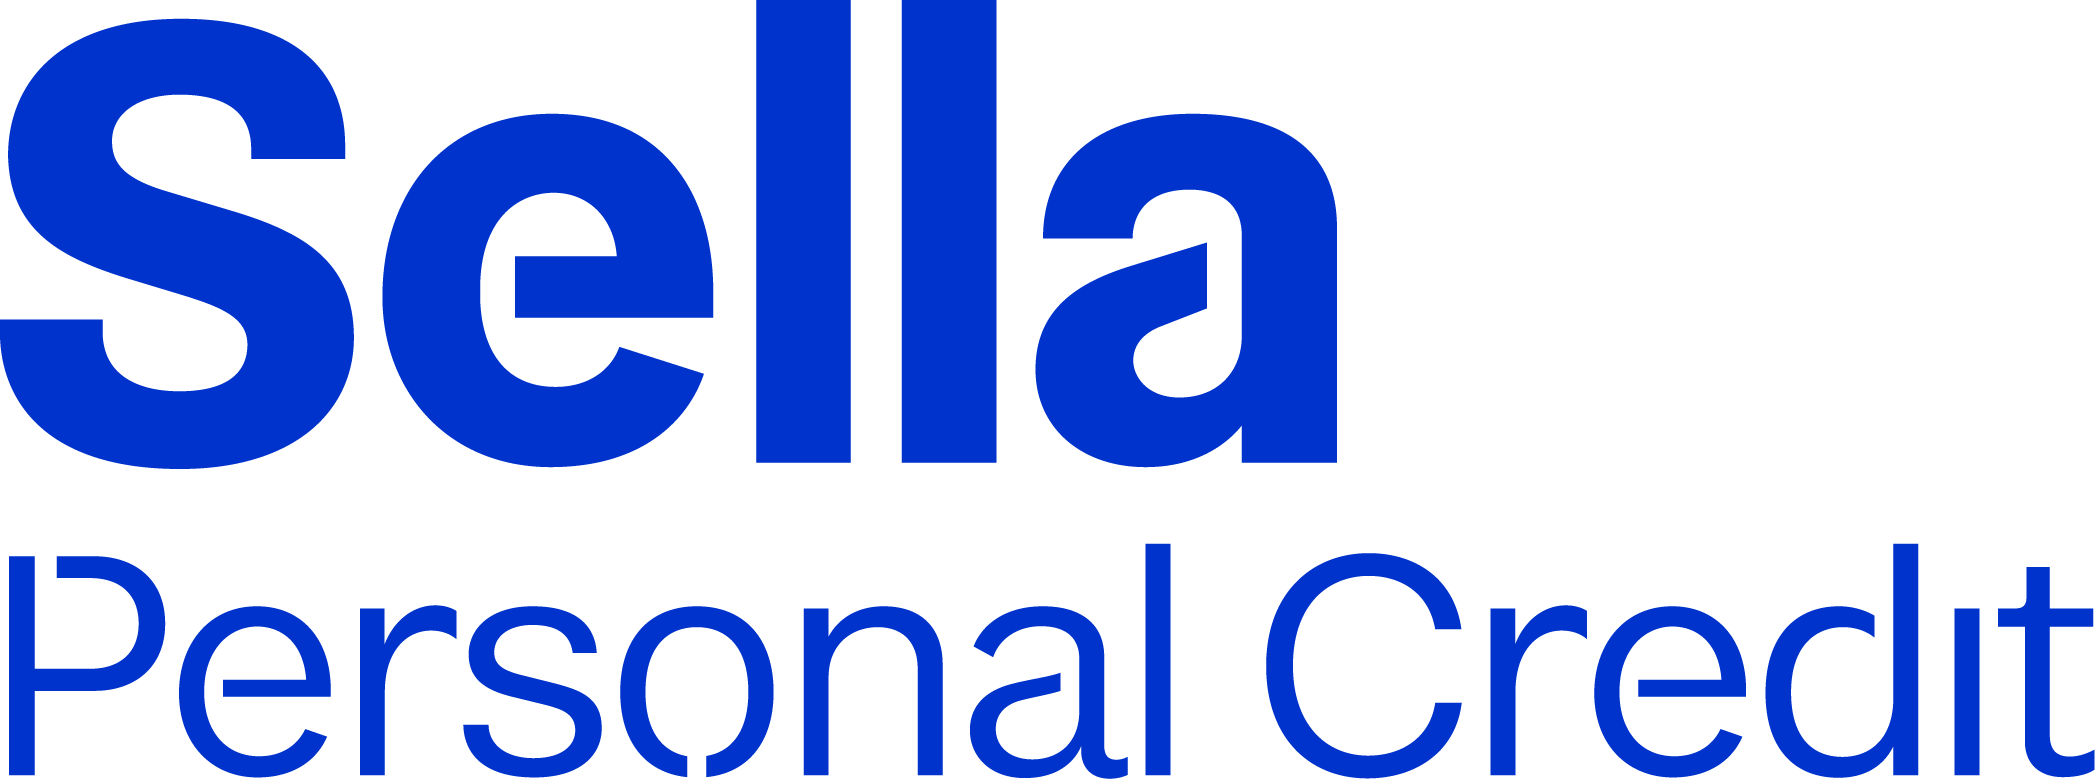 Sella Persona Credit